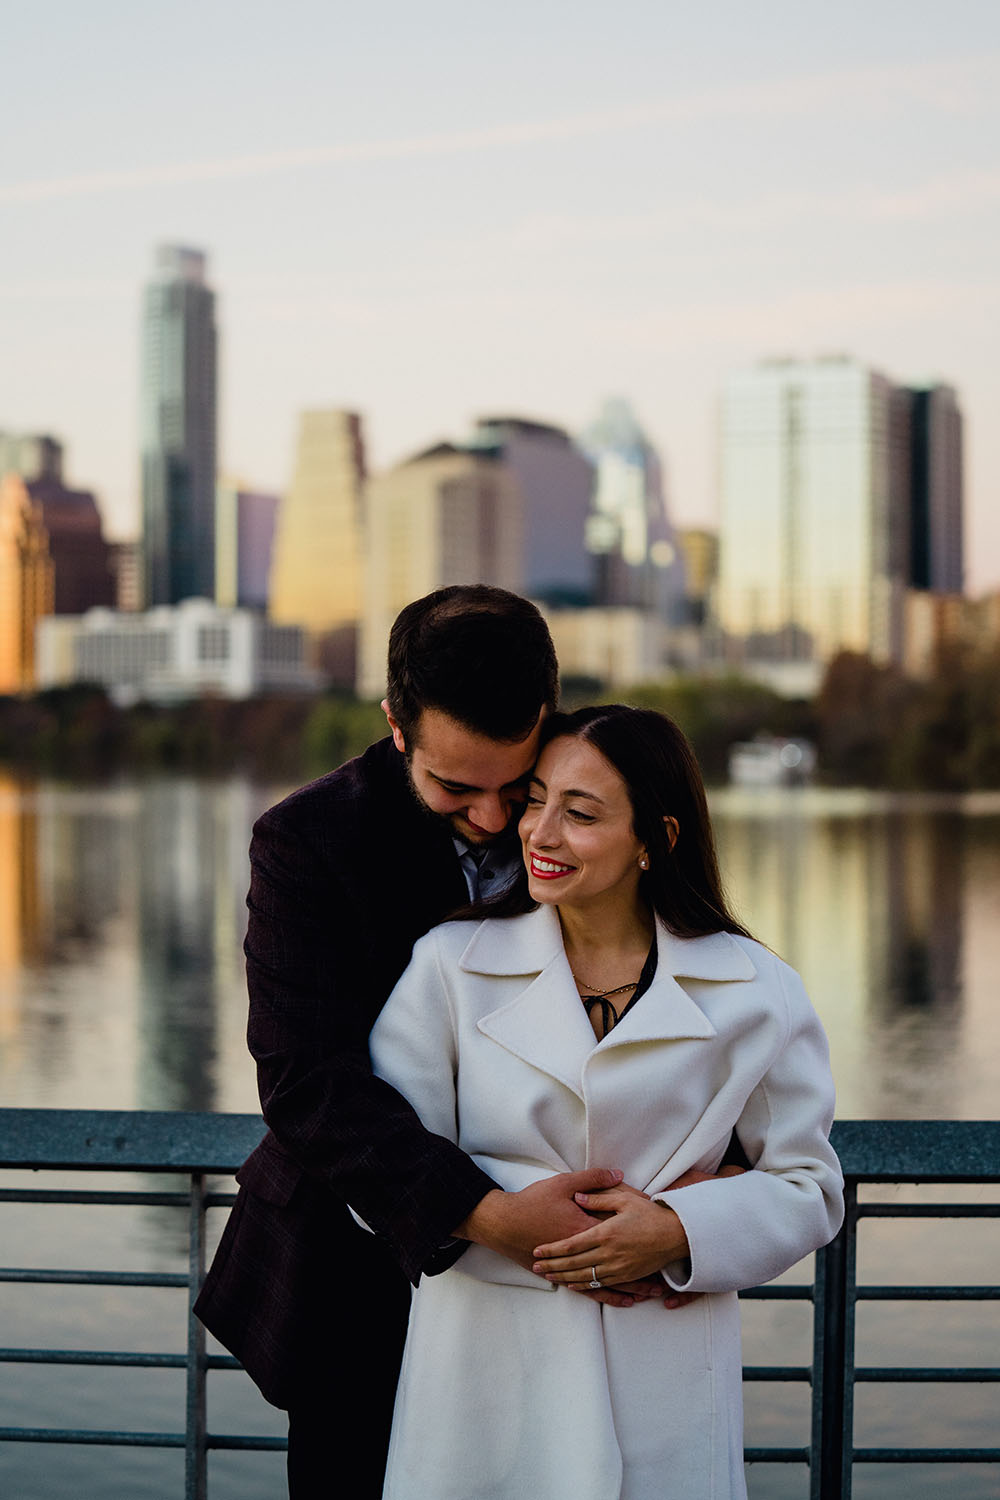 colorful, romantic and natural looking engagement photos with the austin skyline in the background